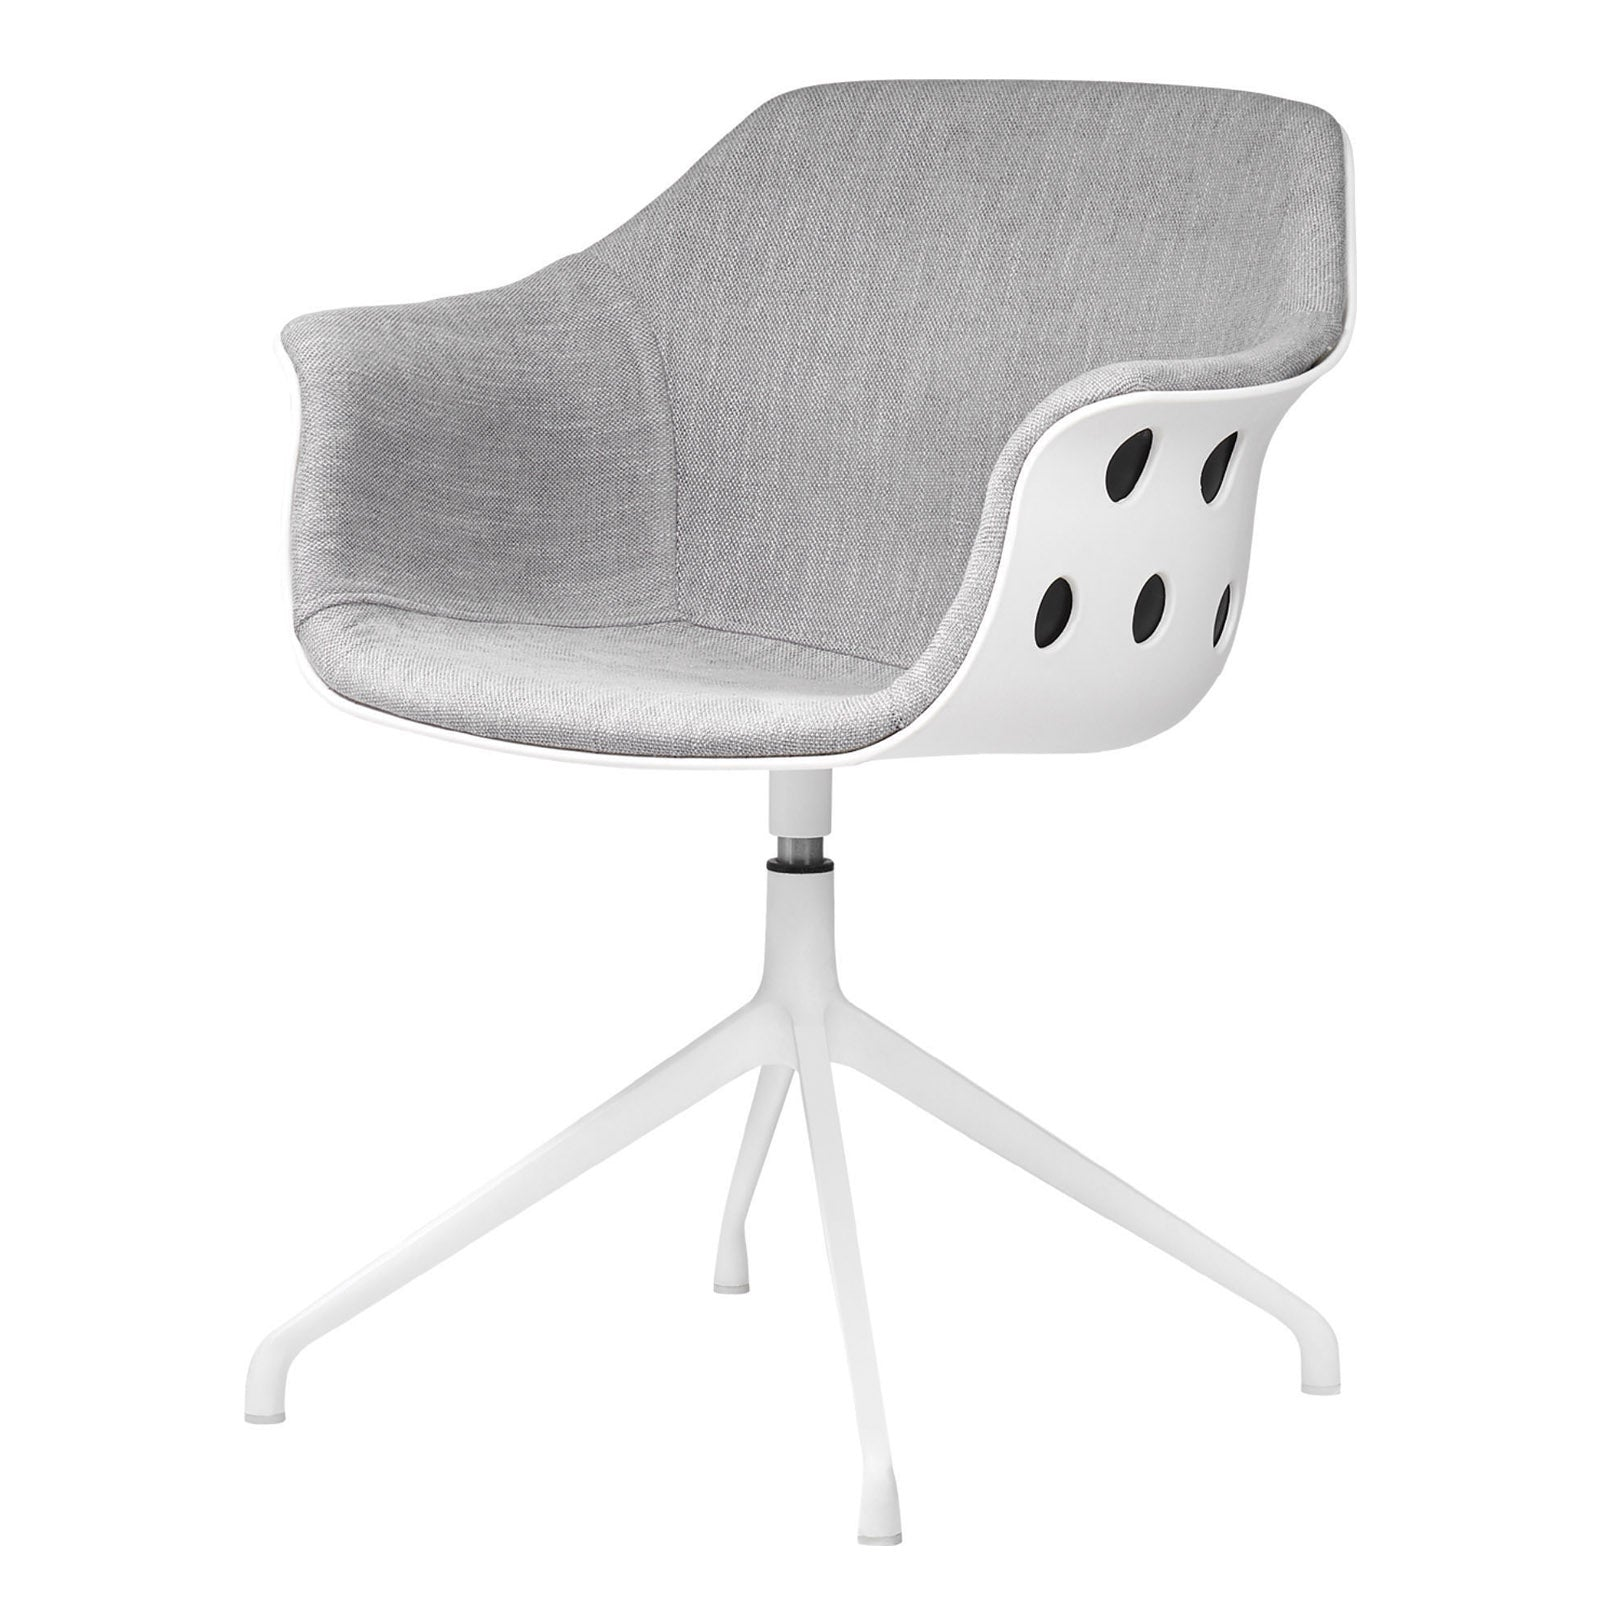 Classic Aluminum Office Chair CHE-048